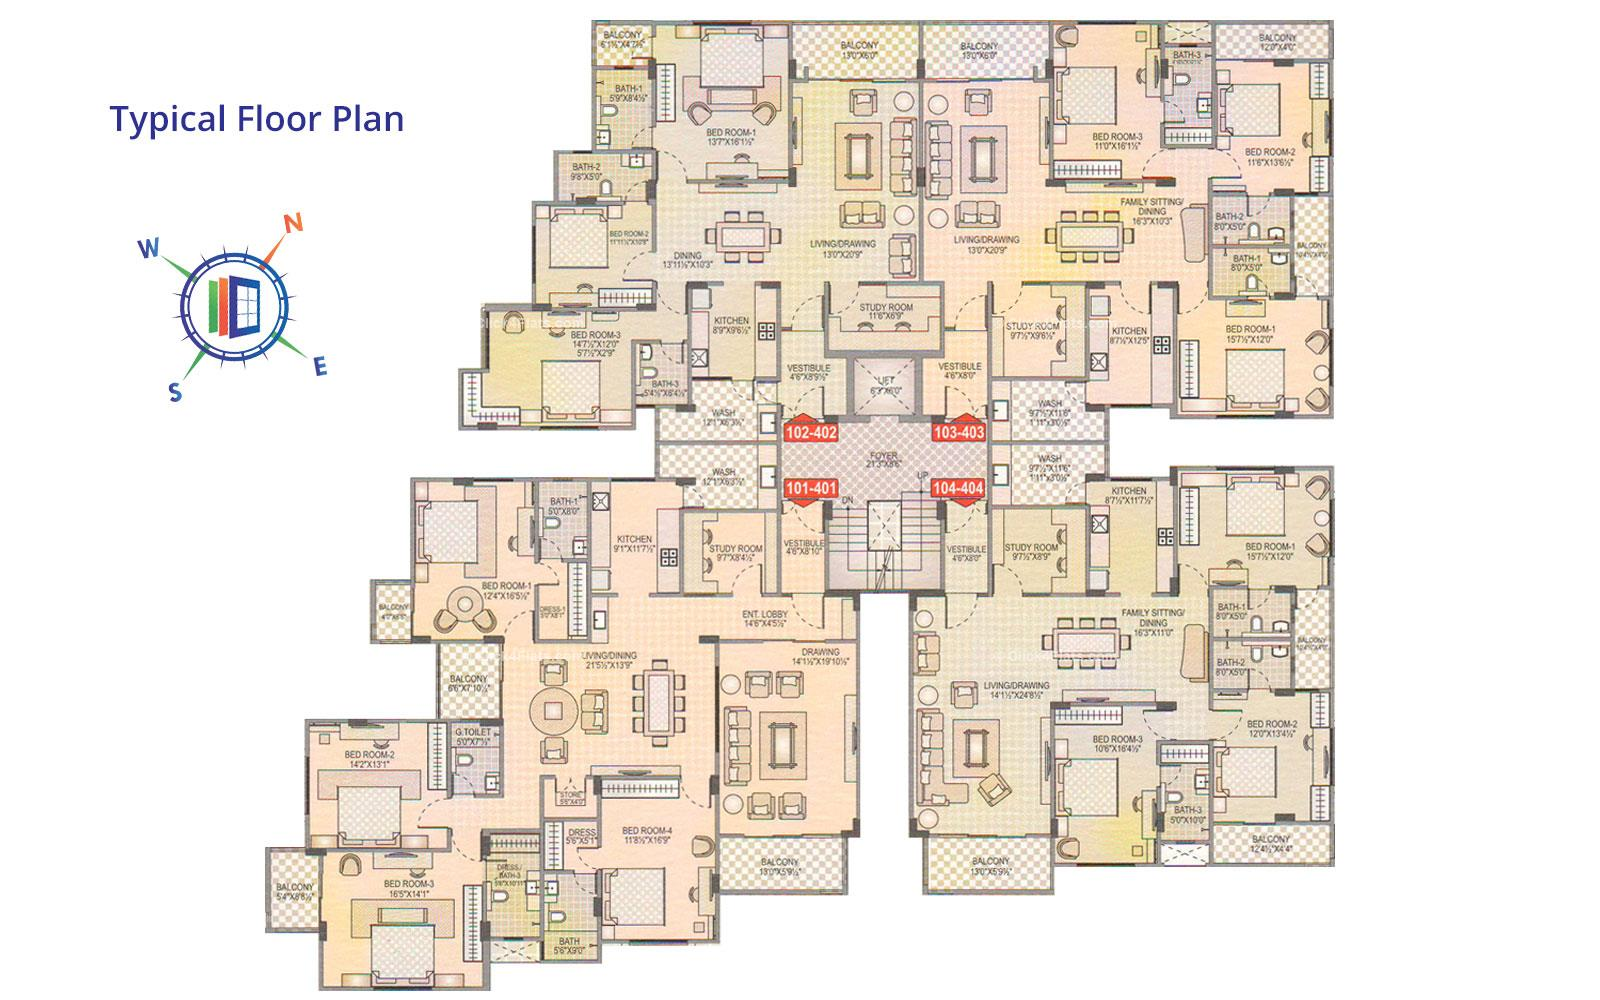 Akshat Traiyalokya Typical Floor Plan